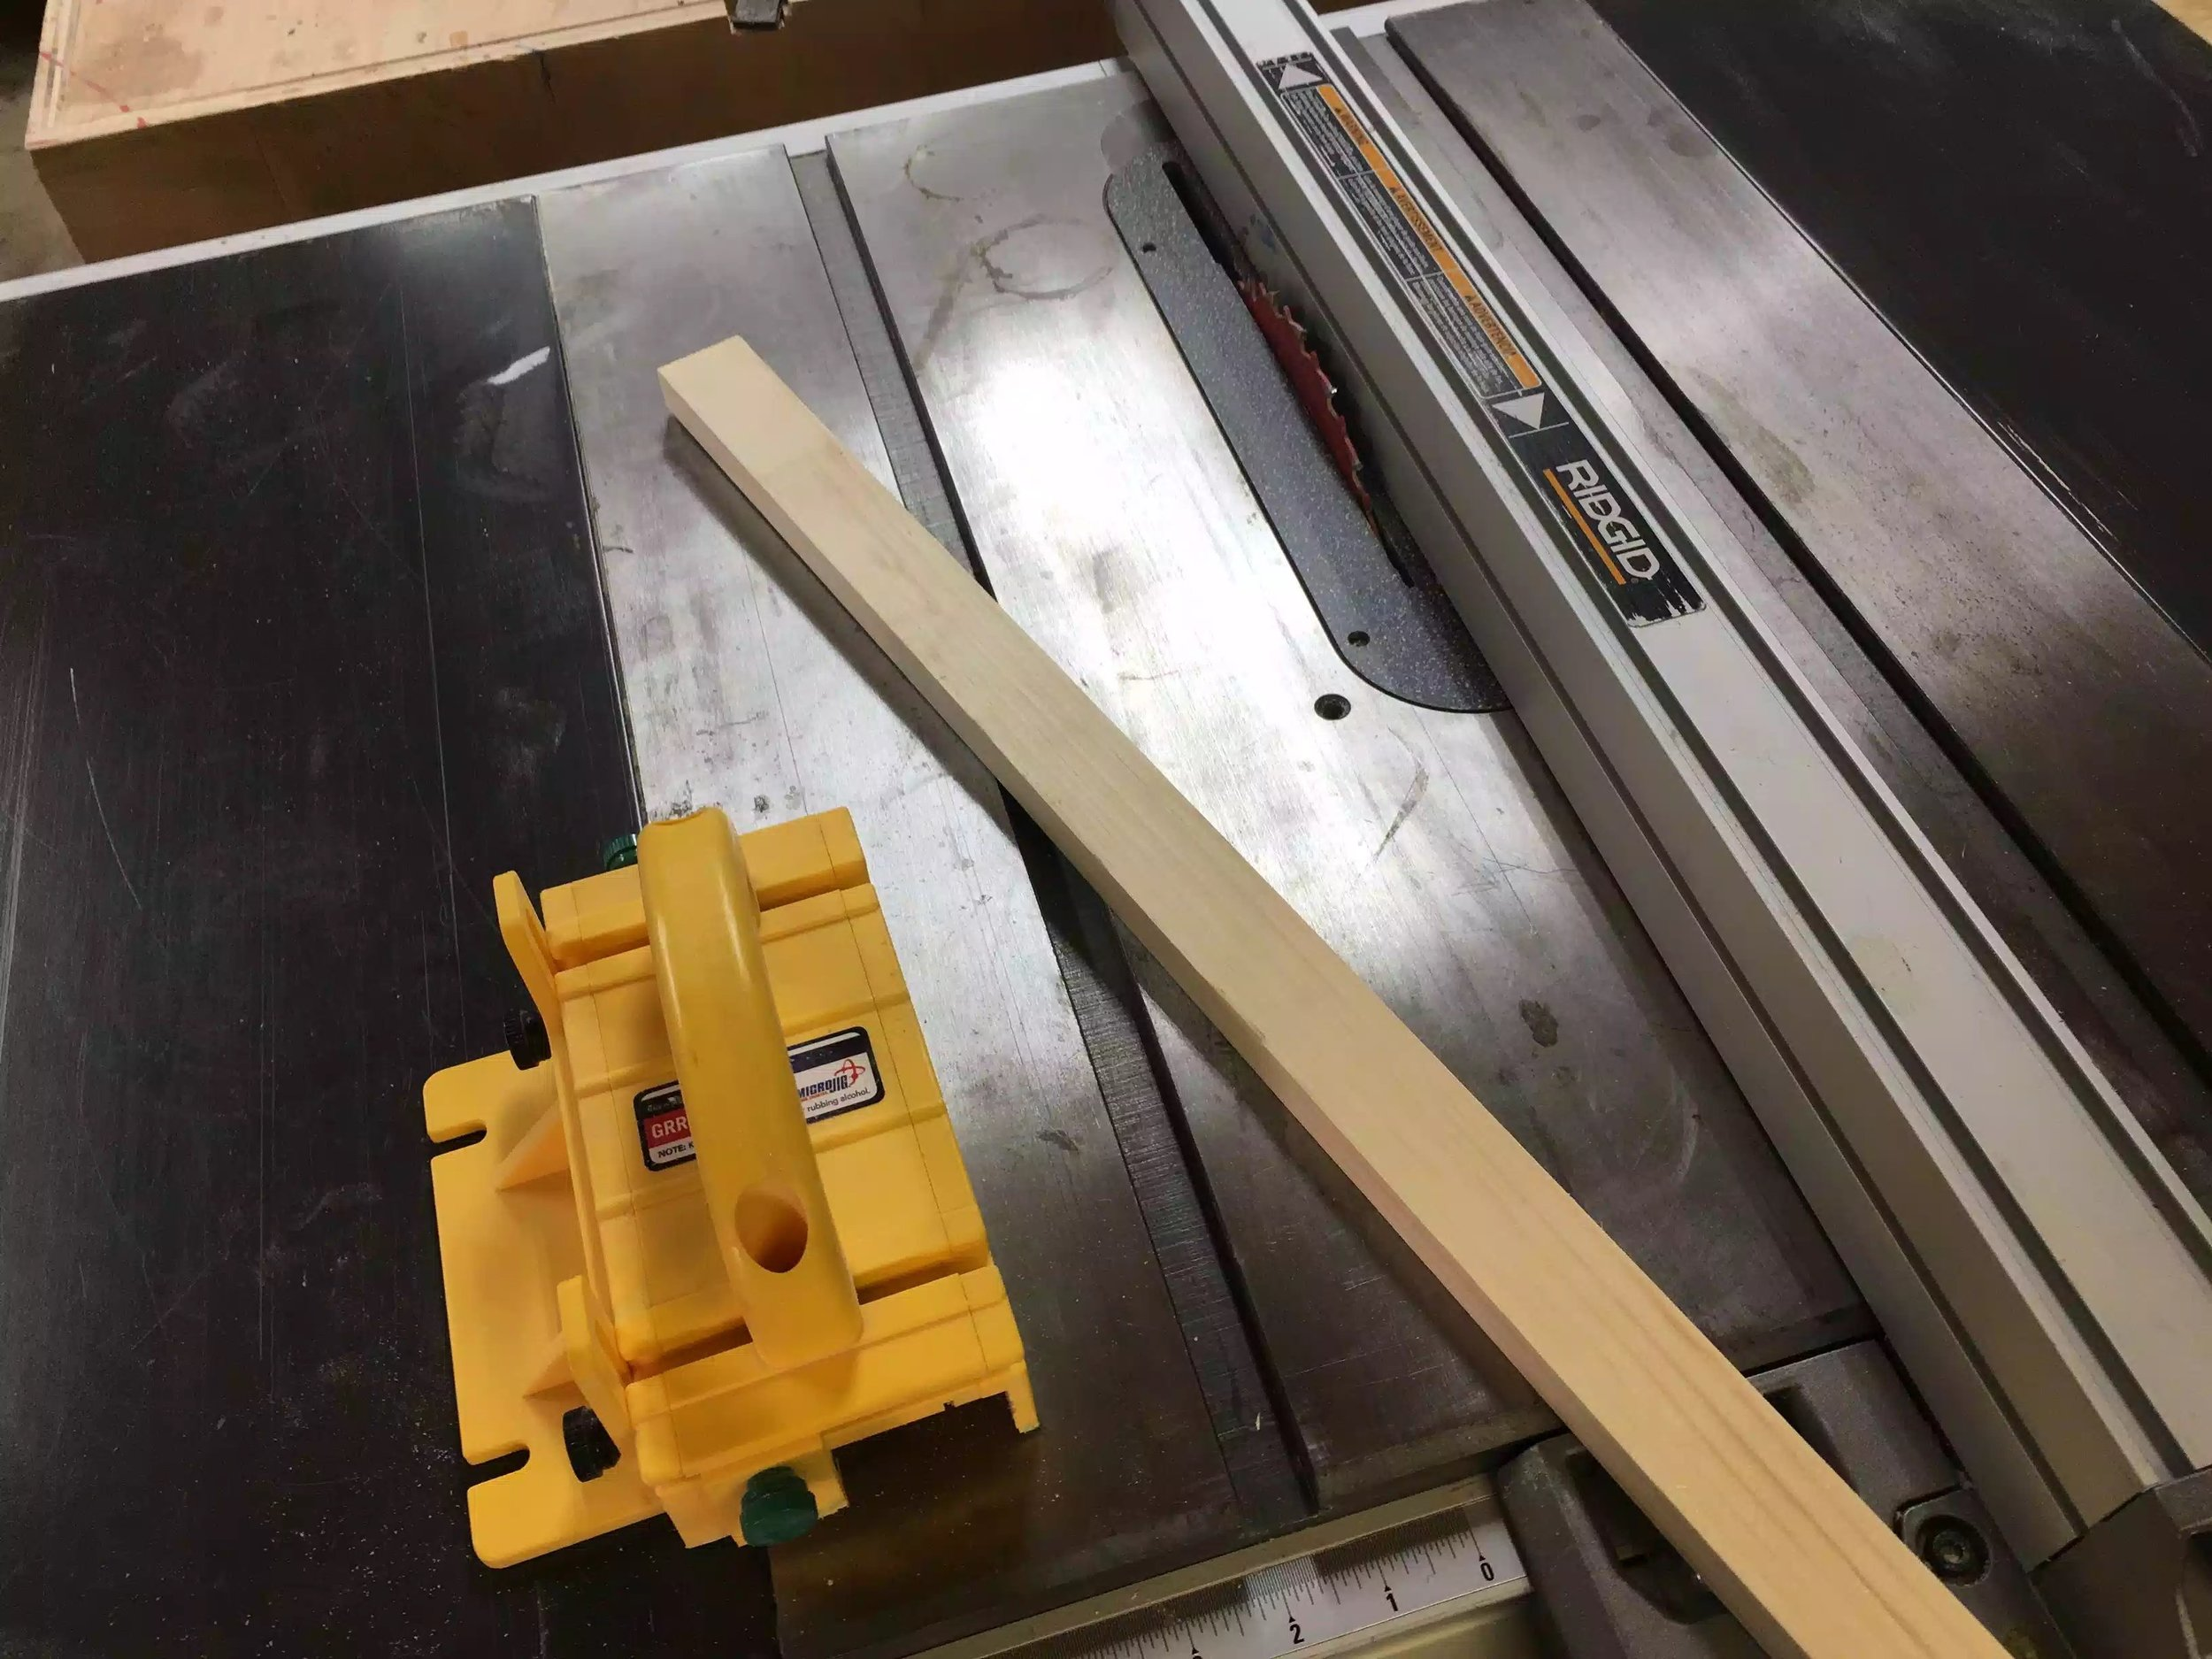 Using my Grripper and the table-saw I ripped the molding off.